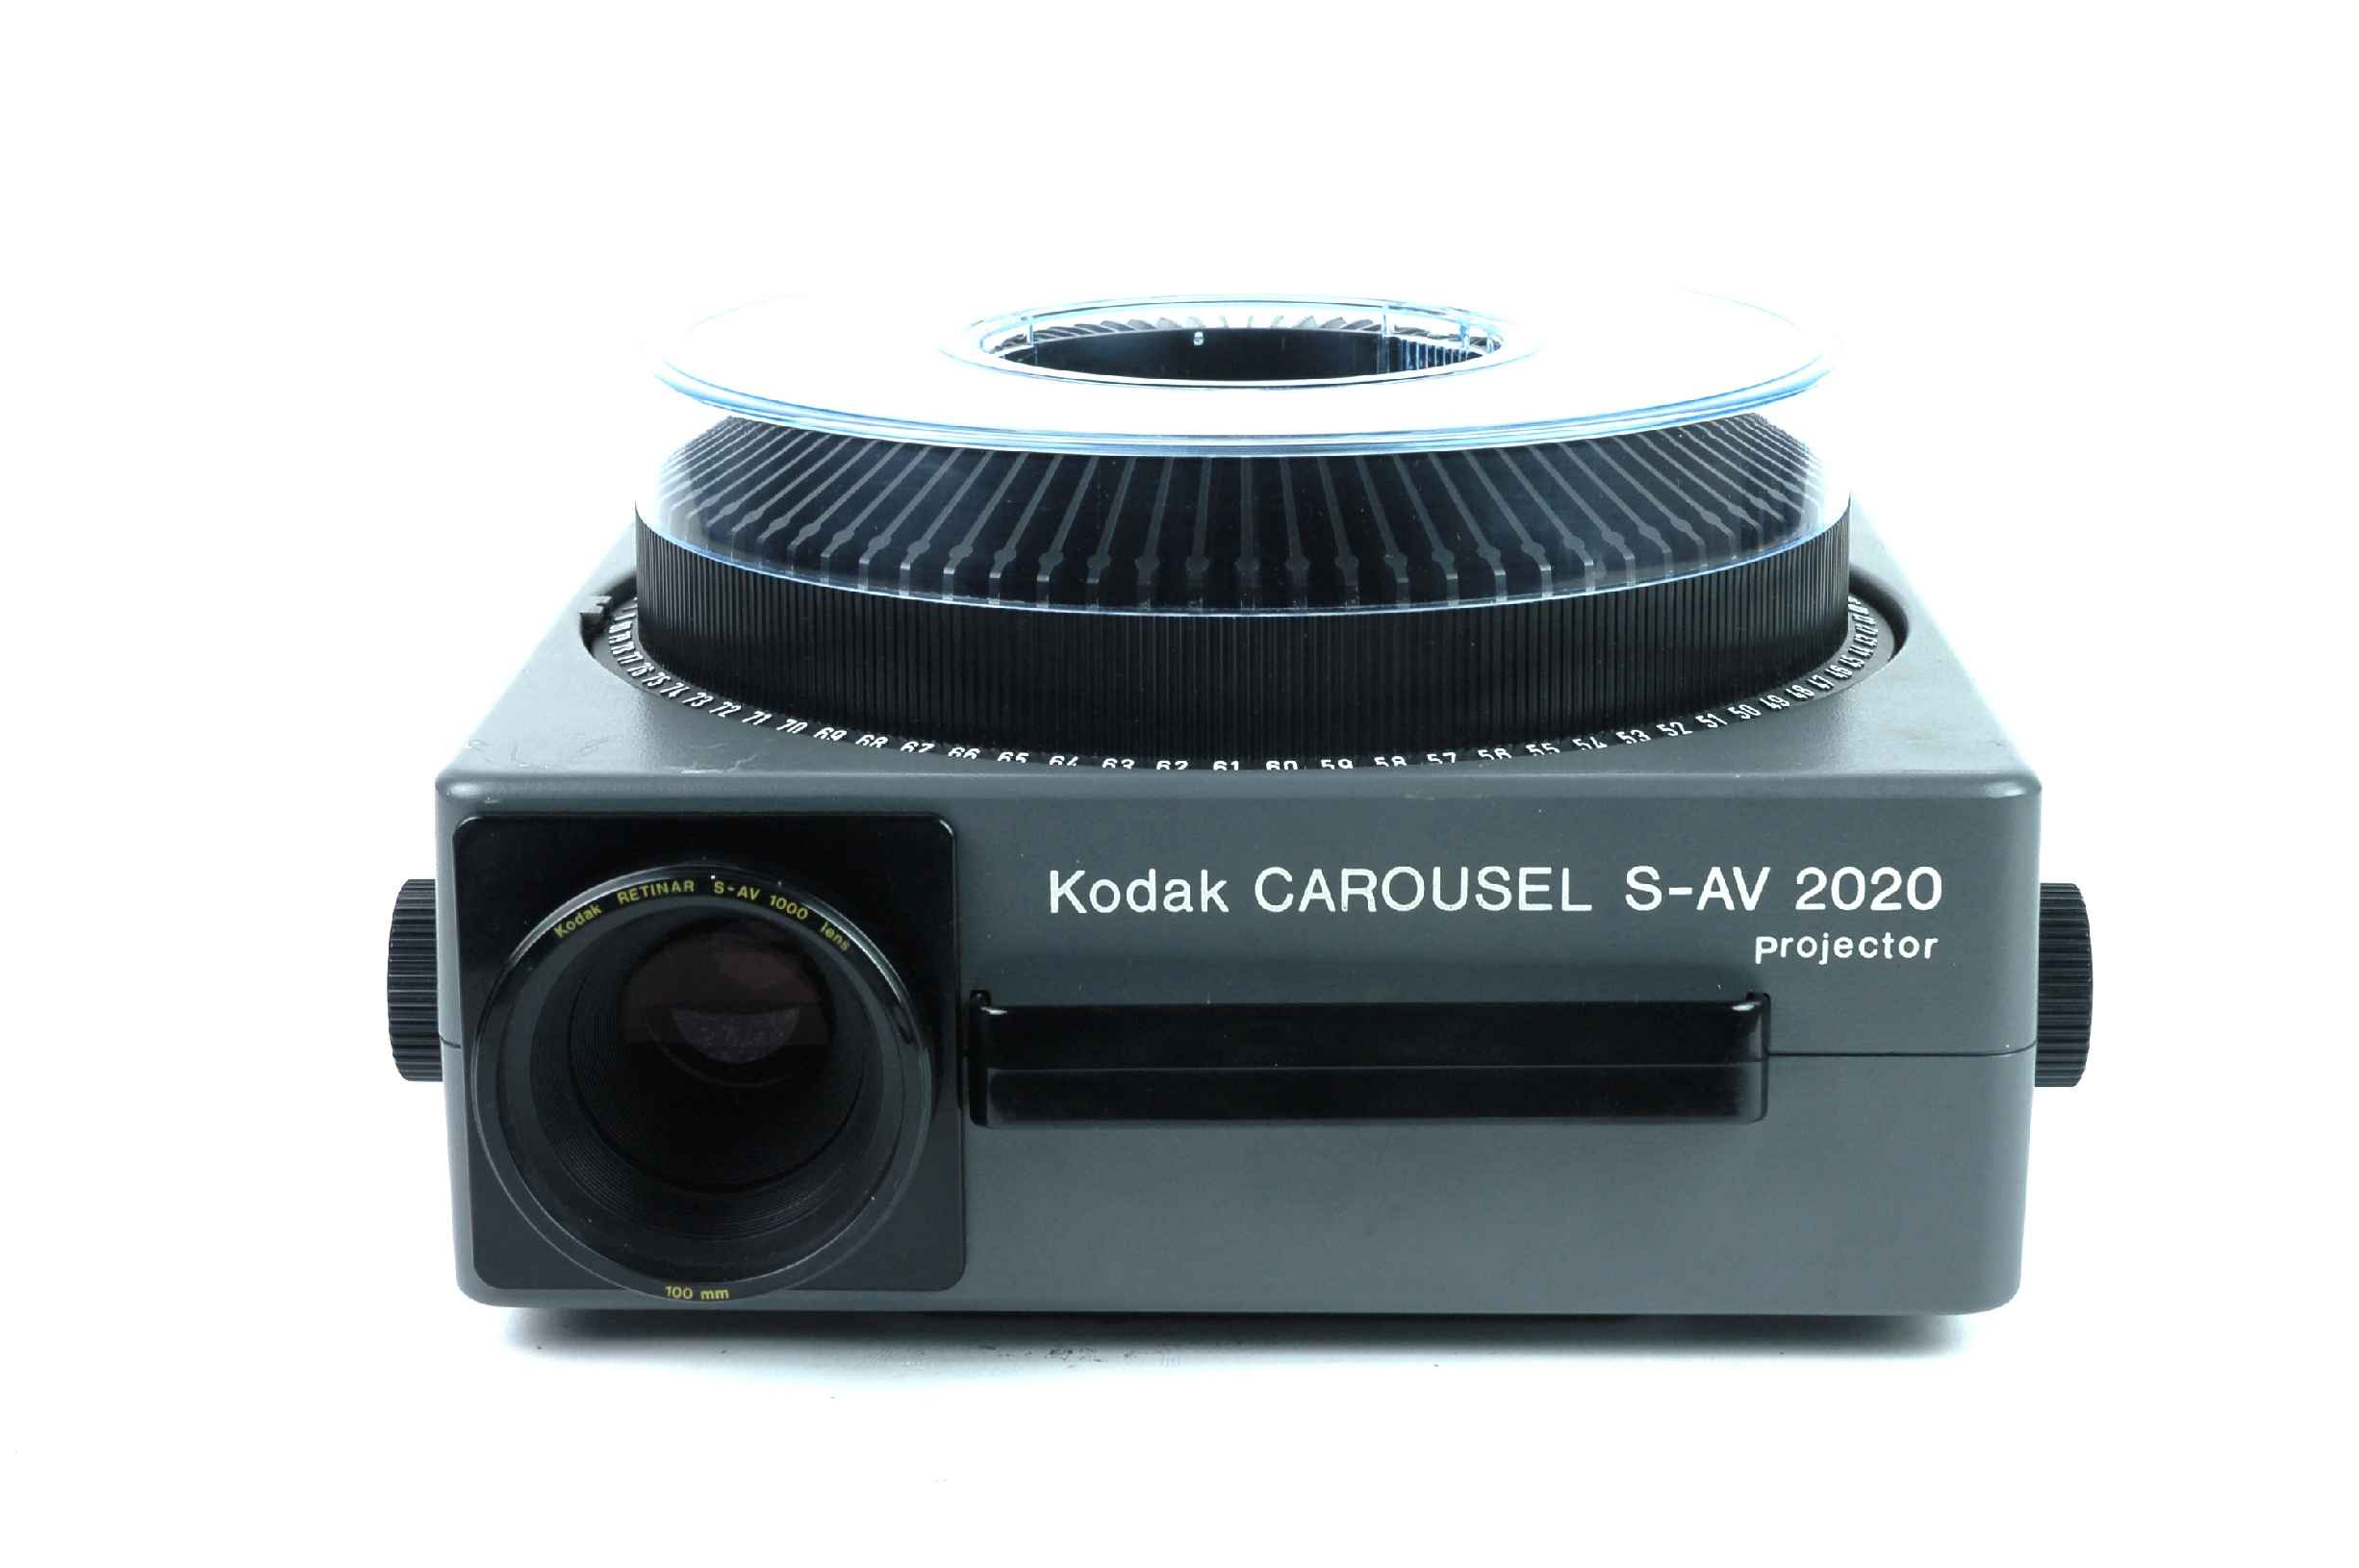 Kodak Carousel S Av 2020 Slide Projectors Spare Parts And Lampu Halogen Osram 1000 Watt Untuk Video Shooting Made In Germany Click On An Image Thumbnail To Enlarge It The Big Slideshow See At Full Resolution